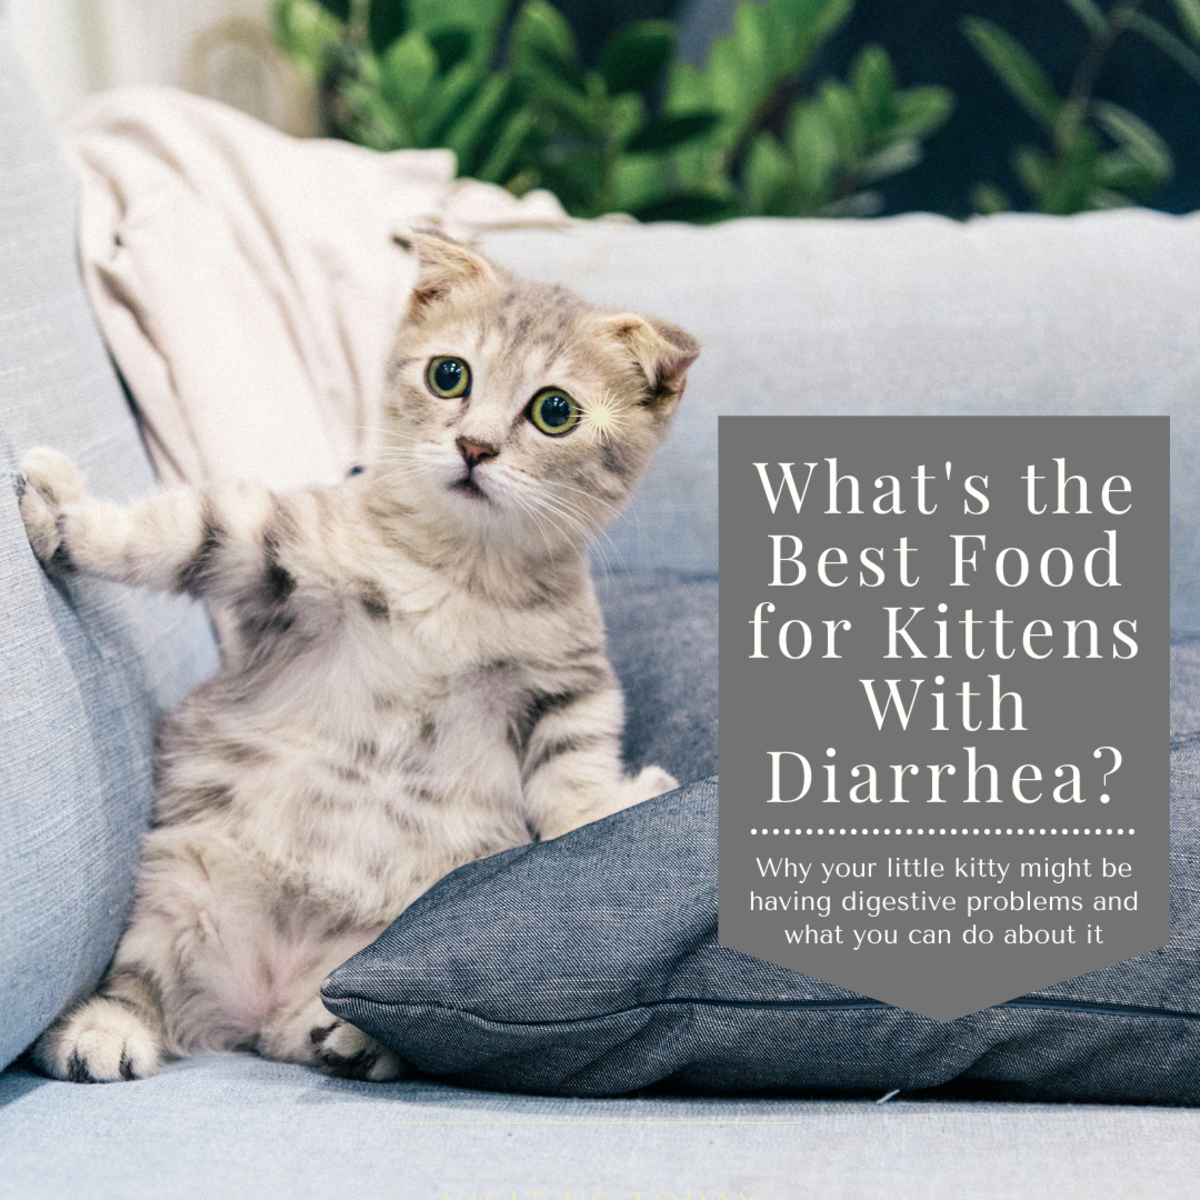 This guide will help you find out why your kitten might be having diarrhea and how you can help their digestive system get back on track.